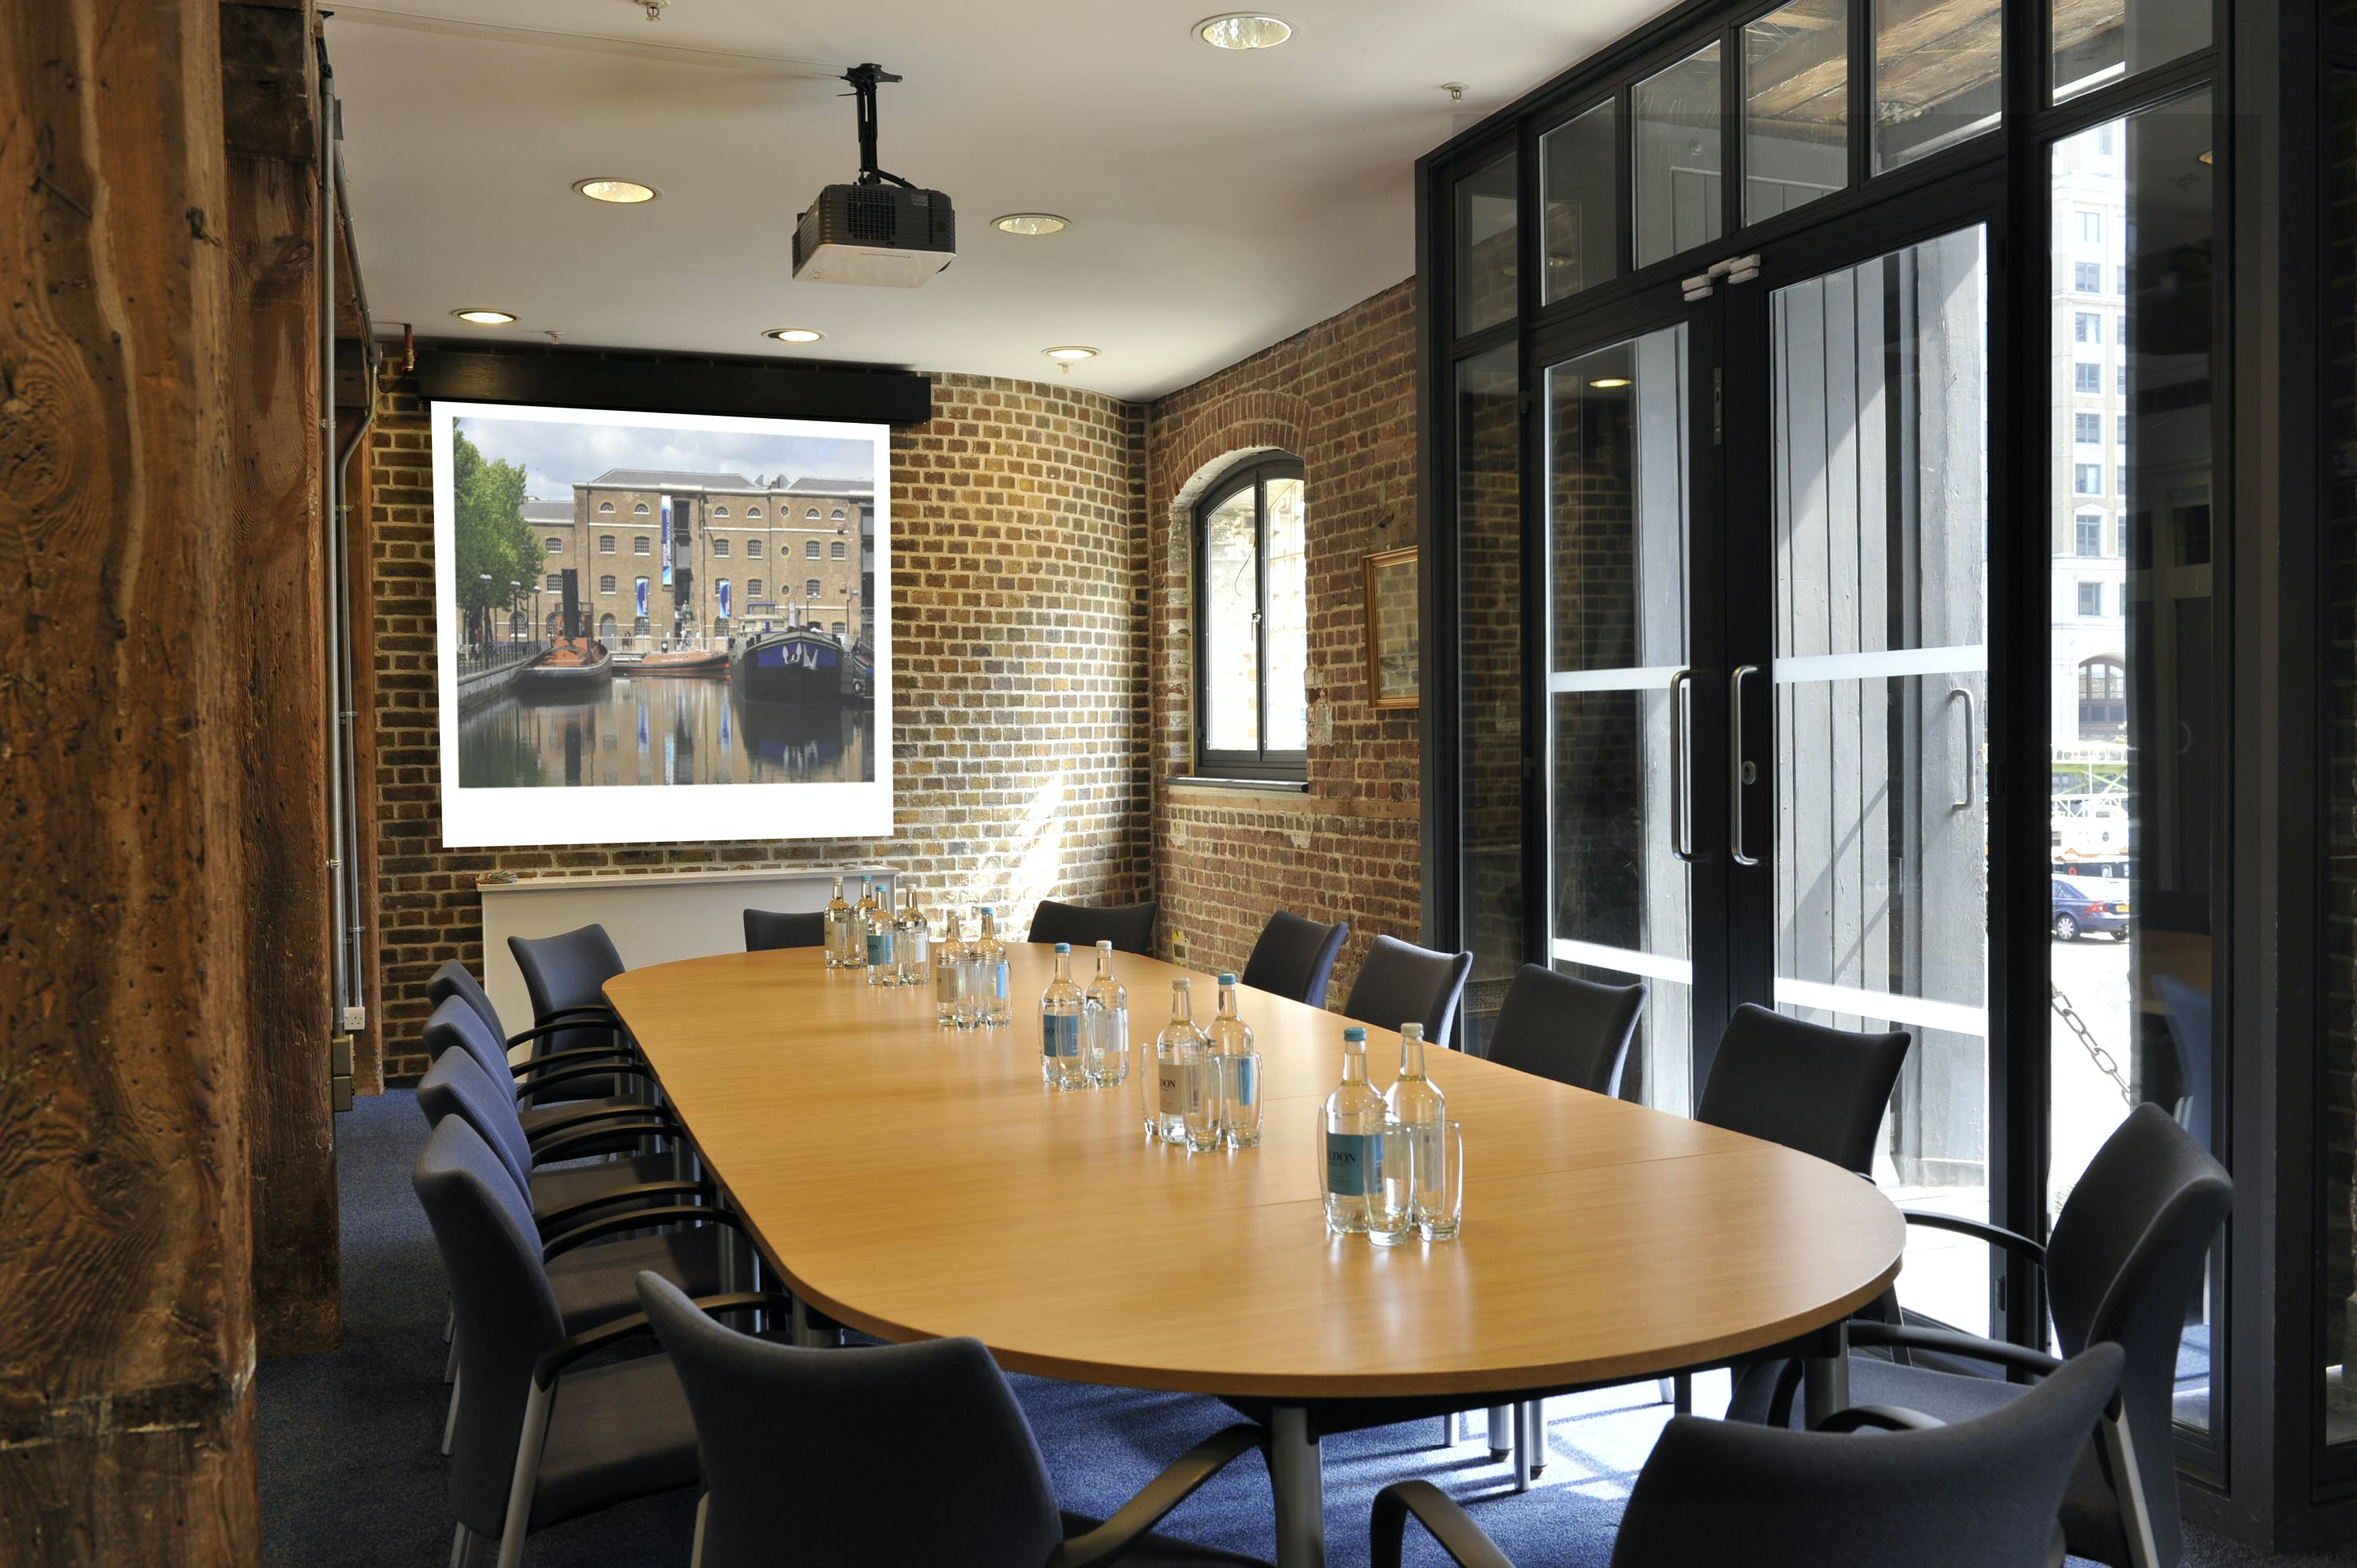 Museum of London Docklands Board Room